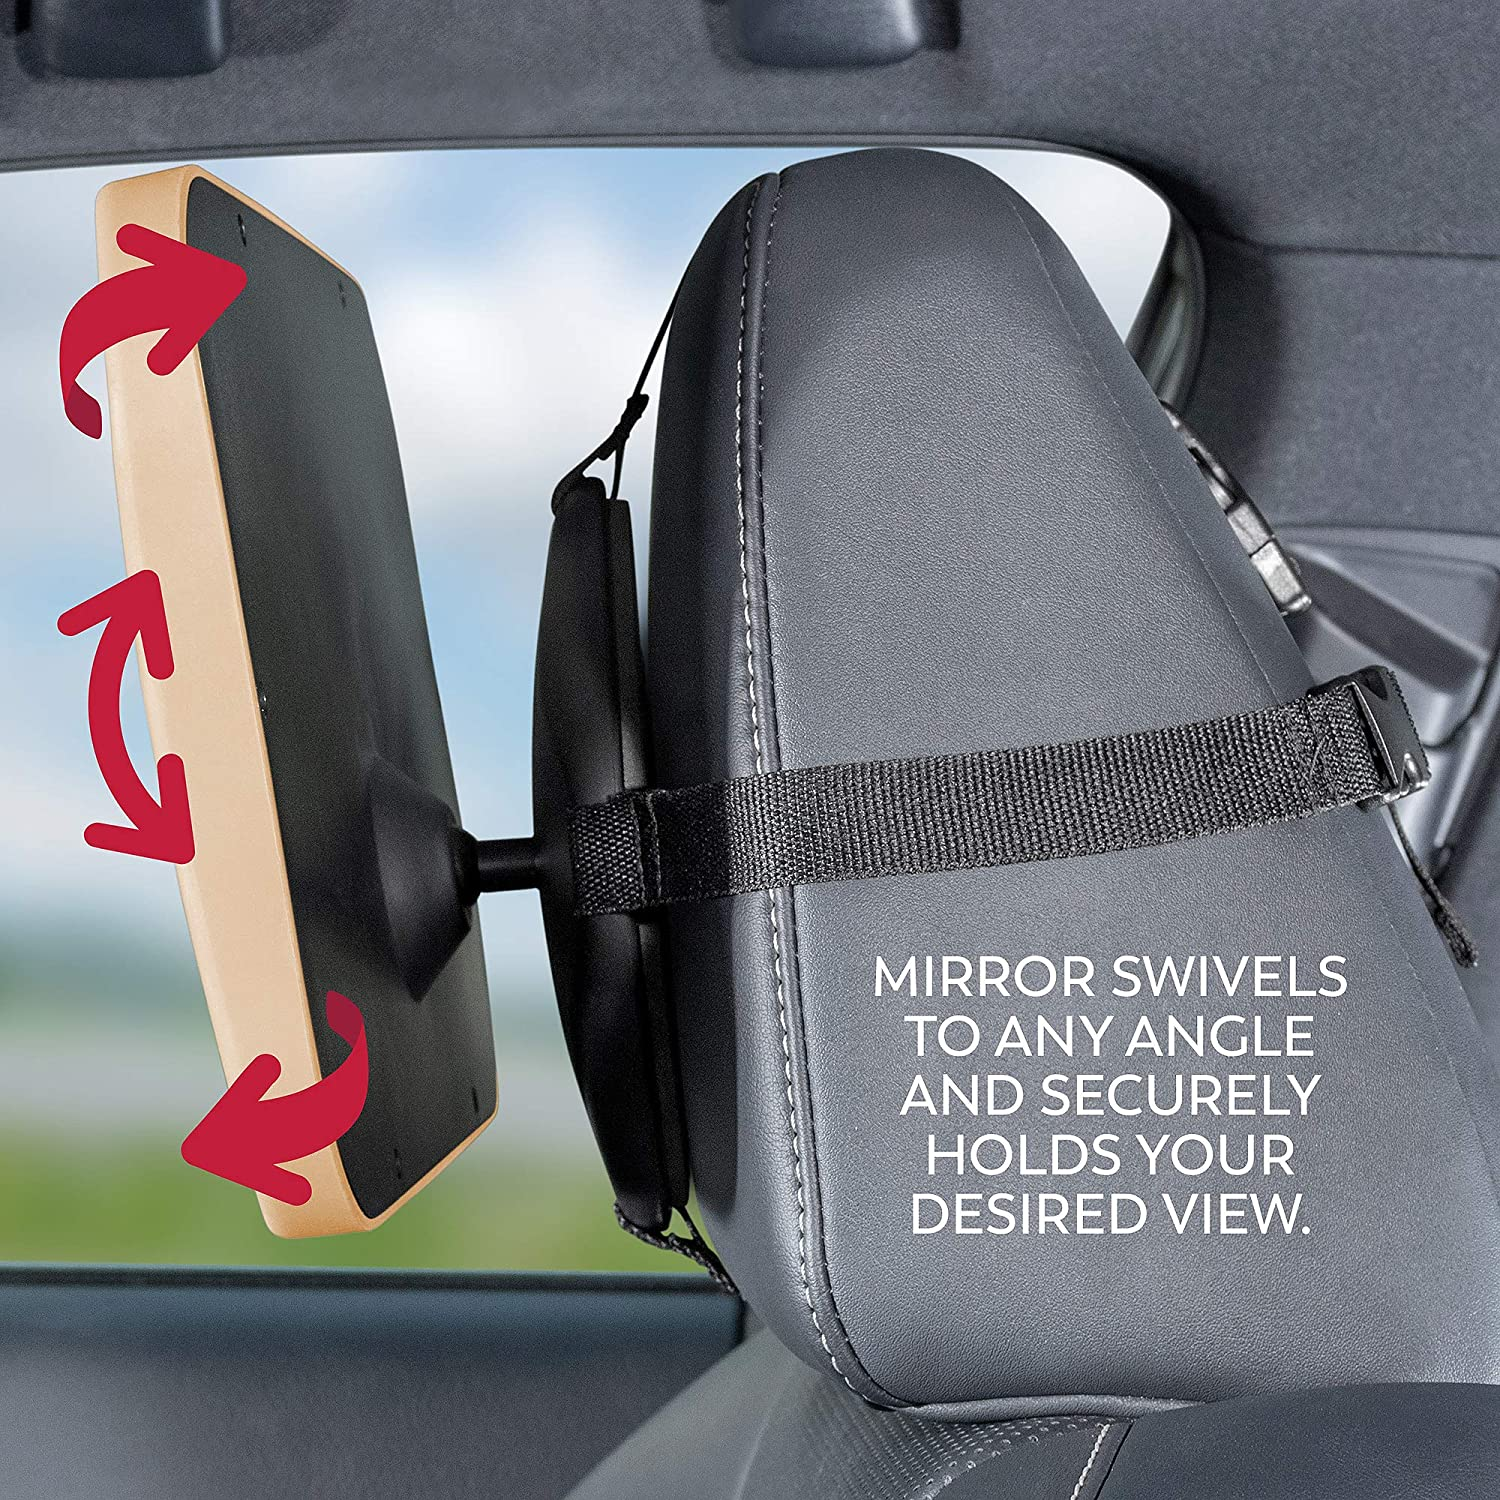 Baby Backseat Mirror for Car Secure and Shatterproofvcv Safe Crystal Clear View of Infant in Rear Facing Car Seat Largest and Most Stable Mirror with Premium Matte Finish